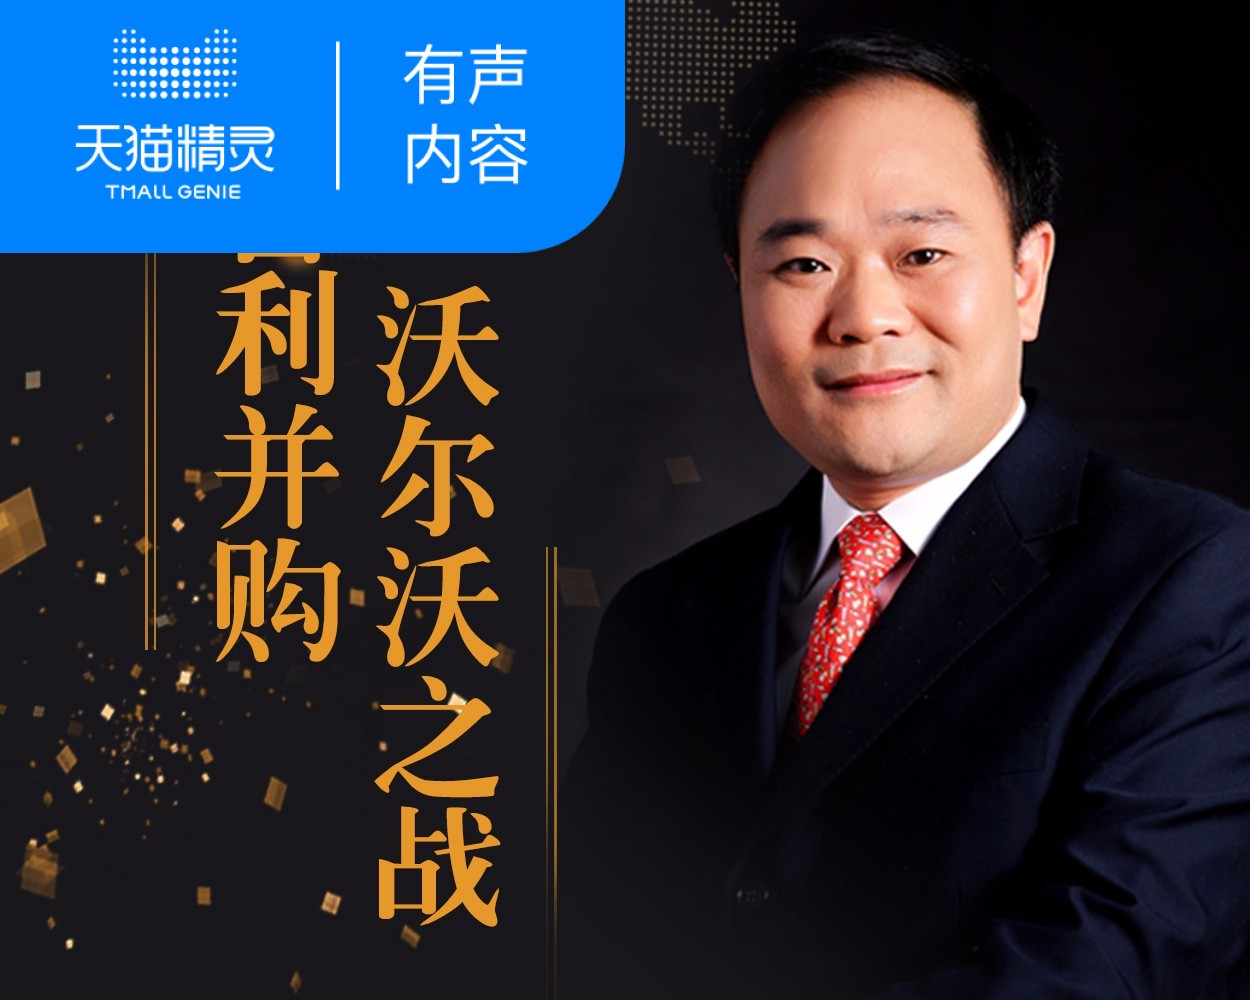 [tmall Genie voice content] new manufacturing era: Li Shufu and super manufacturing of Geely and Volvo